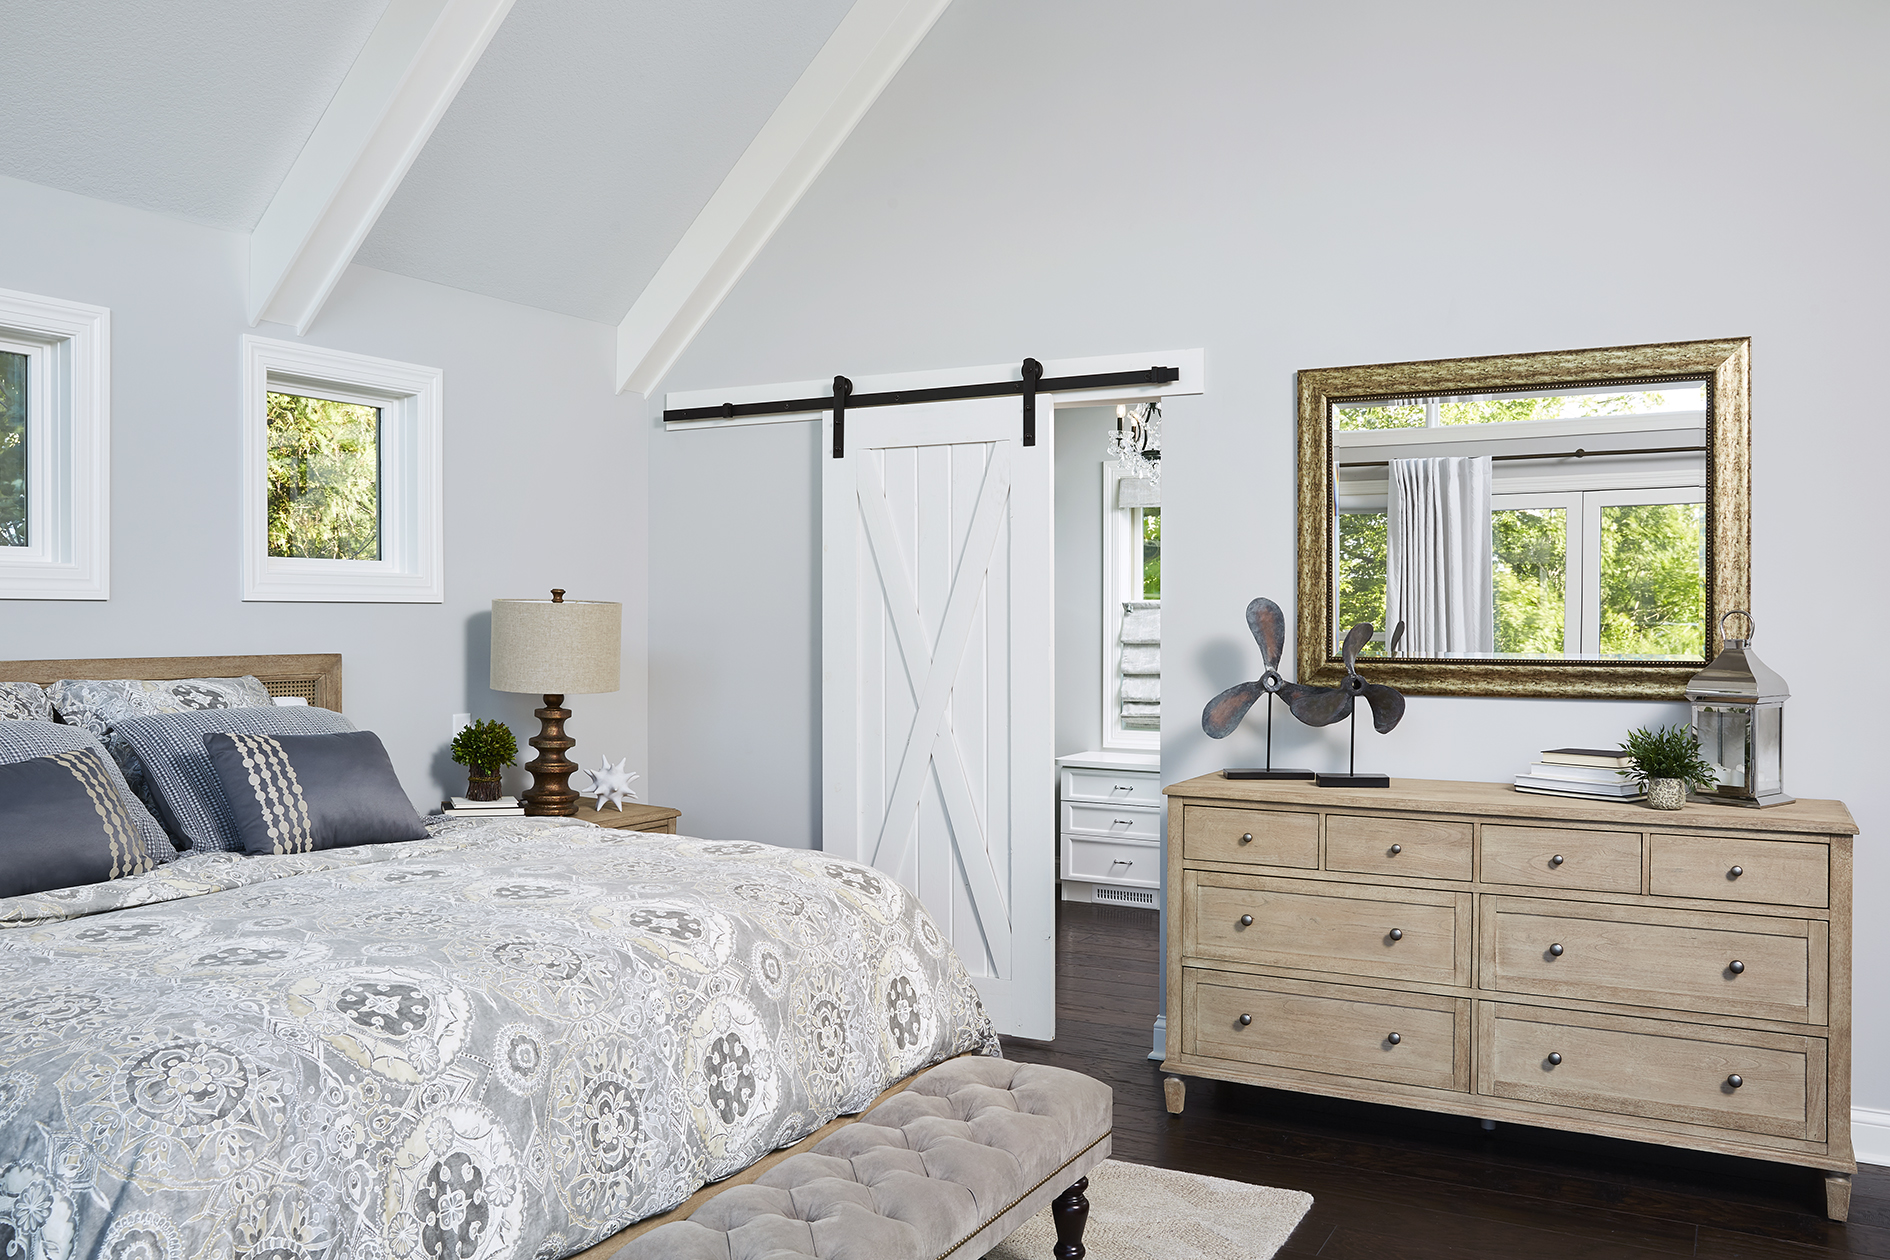 A classic sliding white barn door acts as the entrance to the walk-in closet, providing a unique visual element to the space and saving floor space.